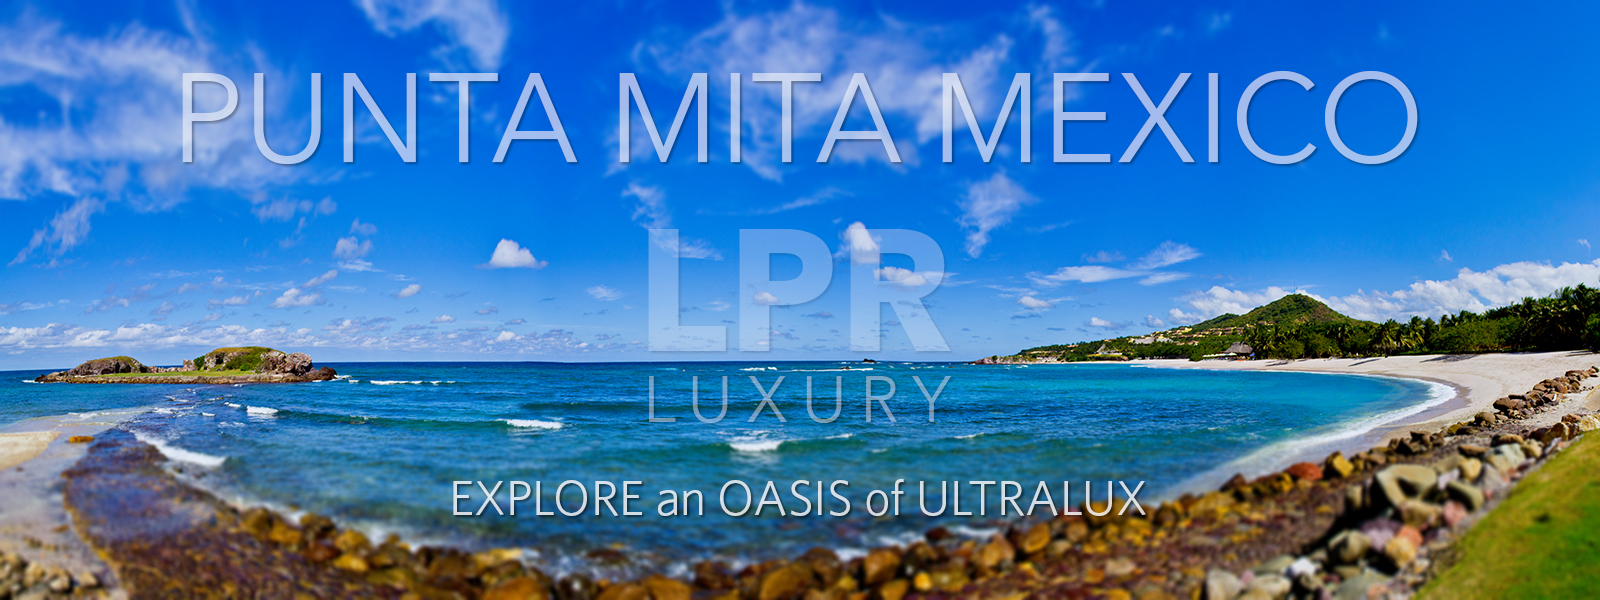 The Ultra Luxury Punta Mita Resort